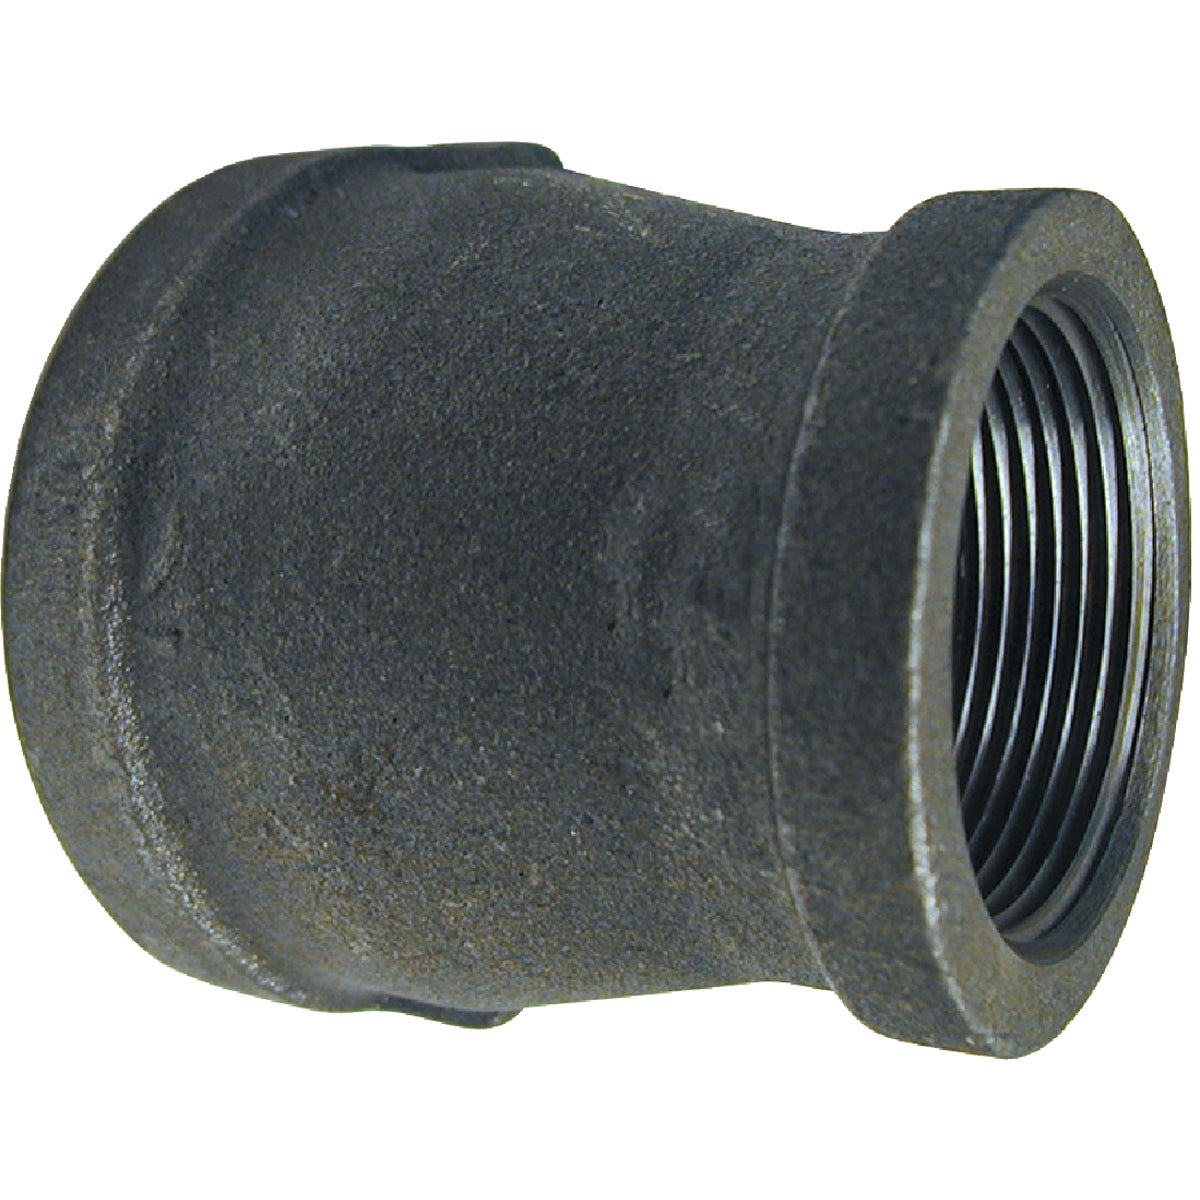 1X3/4 BLACK COUPLING - 521-354BG by Mueller B K